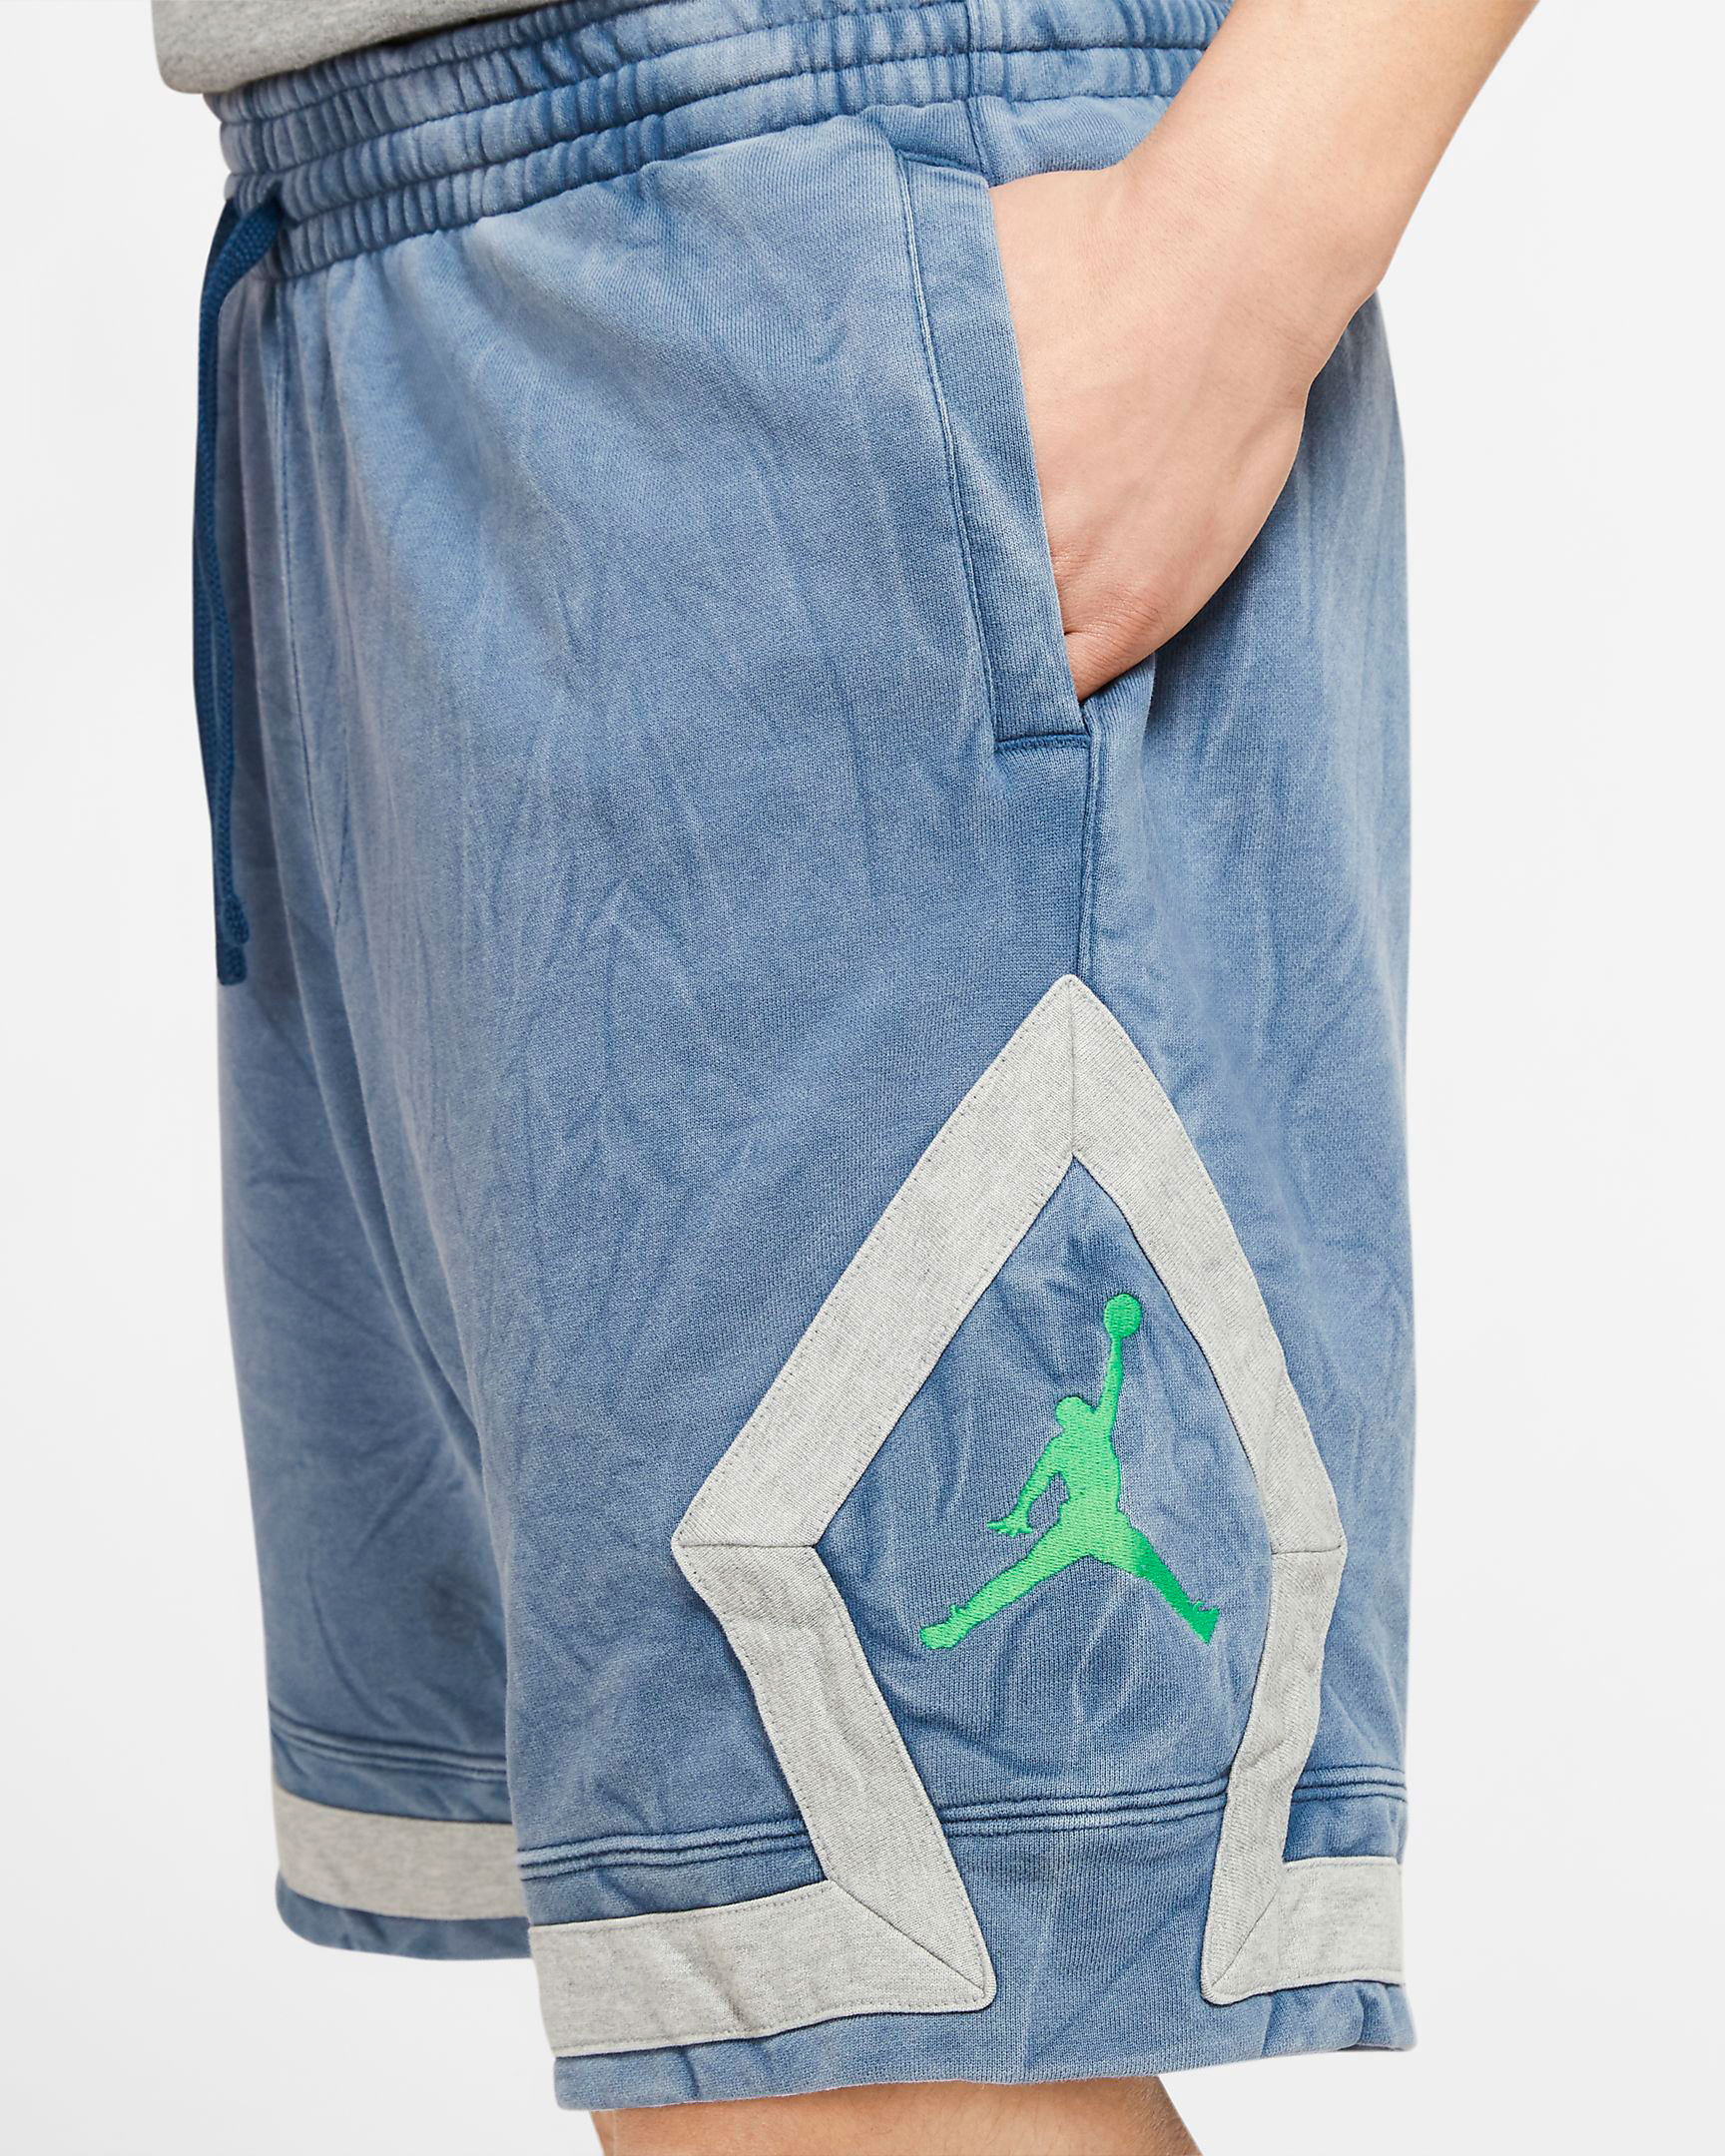 flint-air-jordan-13-shorts-blue-grey-2